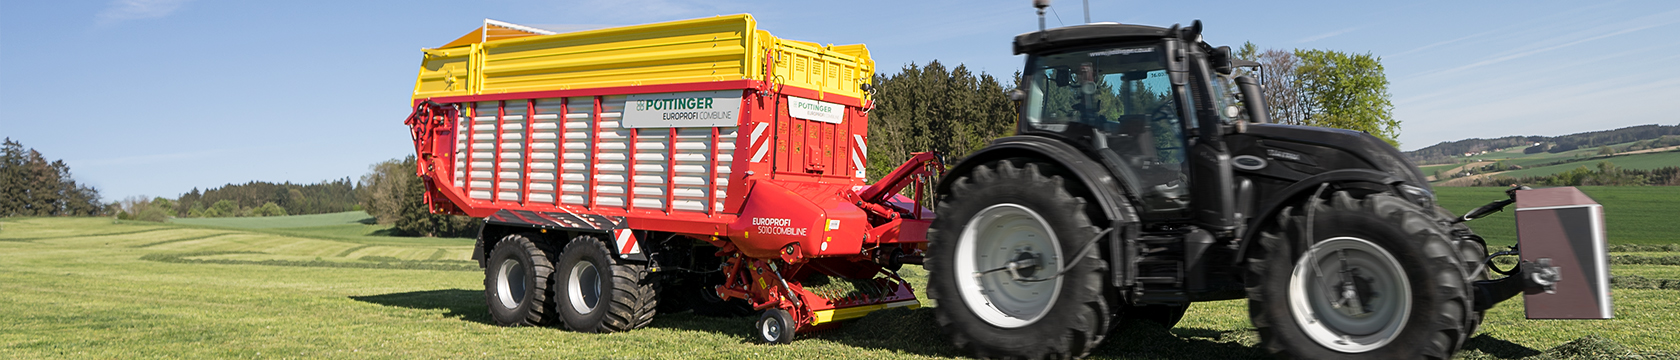 EUROPROFI COMBILINE 2 in 1 loader wagon technology